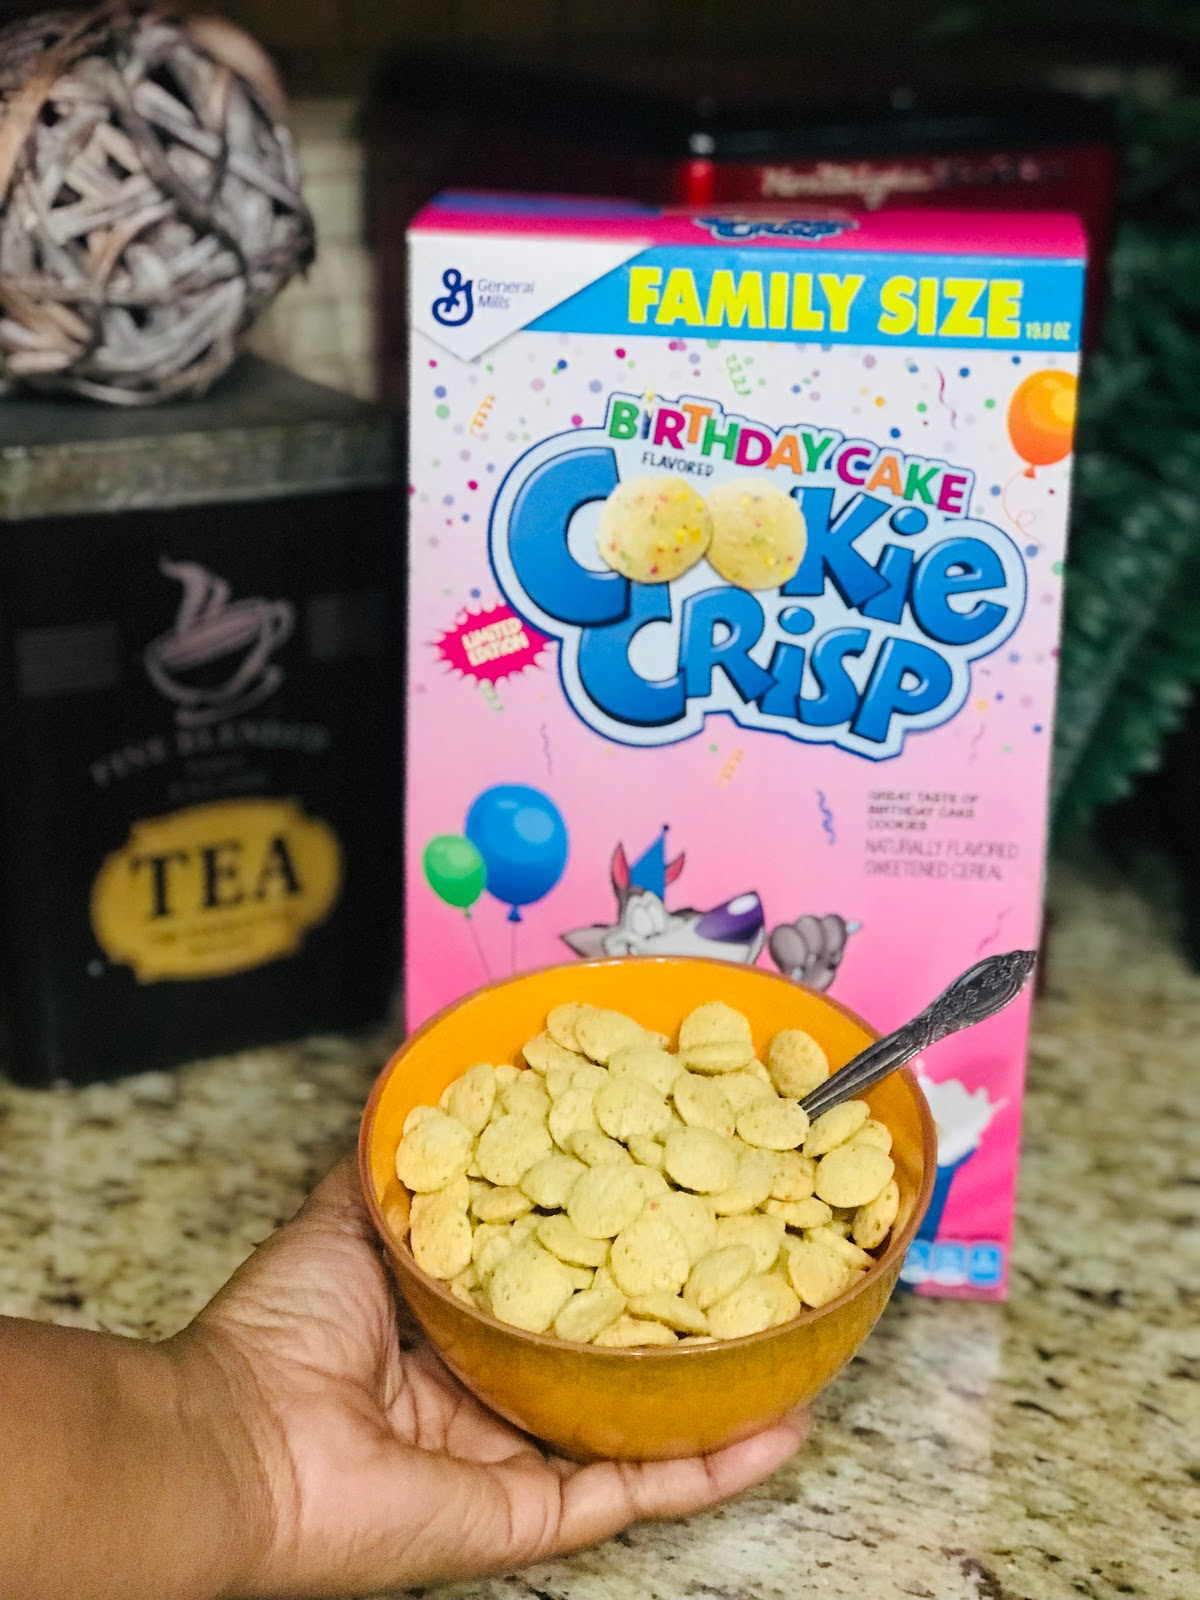 Image: Birthday cookie crisp cereal brough from the Dollar store. Picture taken by Tangie Bell. Used on Bits and Babbles blog